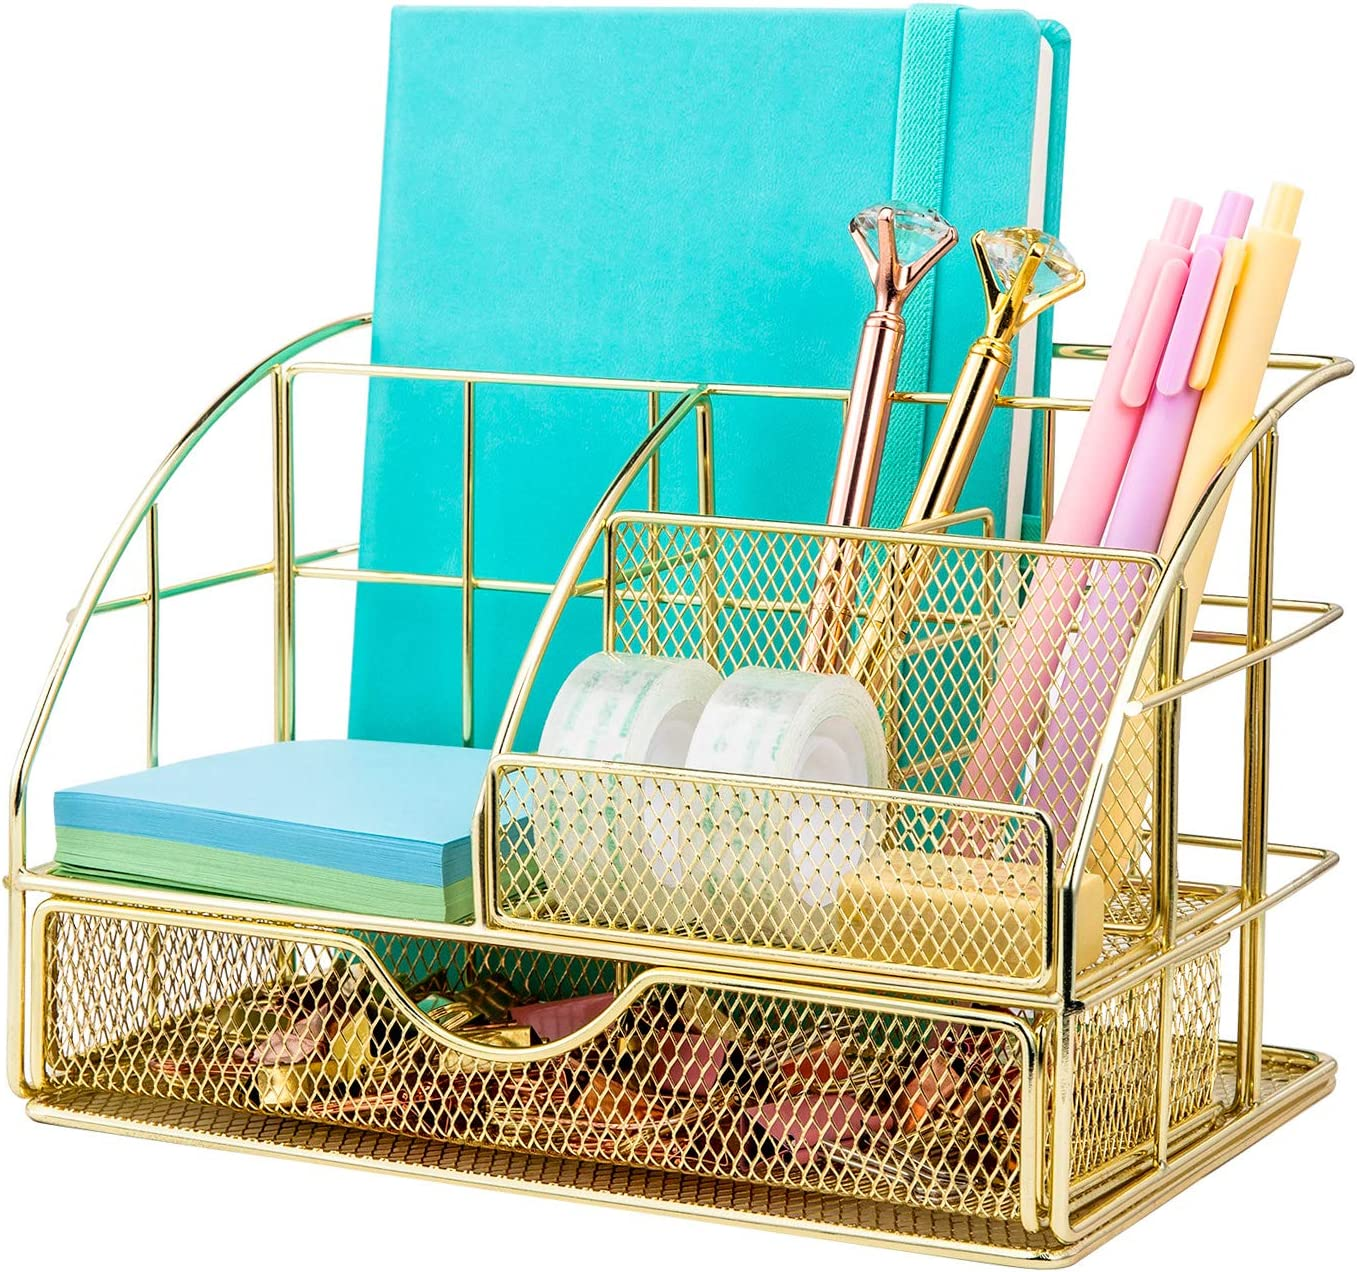 Upgraded Desk Organizer for Women, Cute Mesh Office Supplies Accessories Essentials Caddy with Drawer for Home & Office Desktop Organization & Decor, Gold